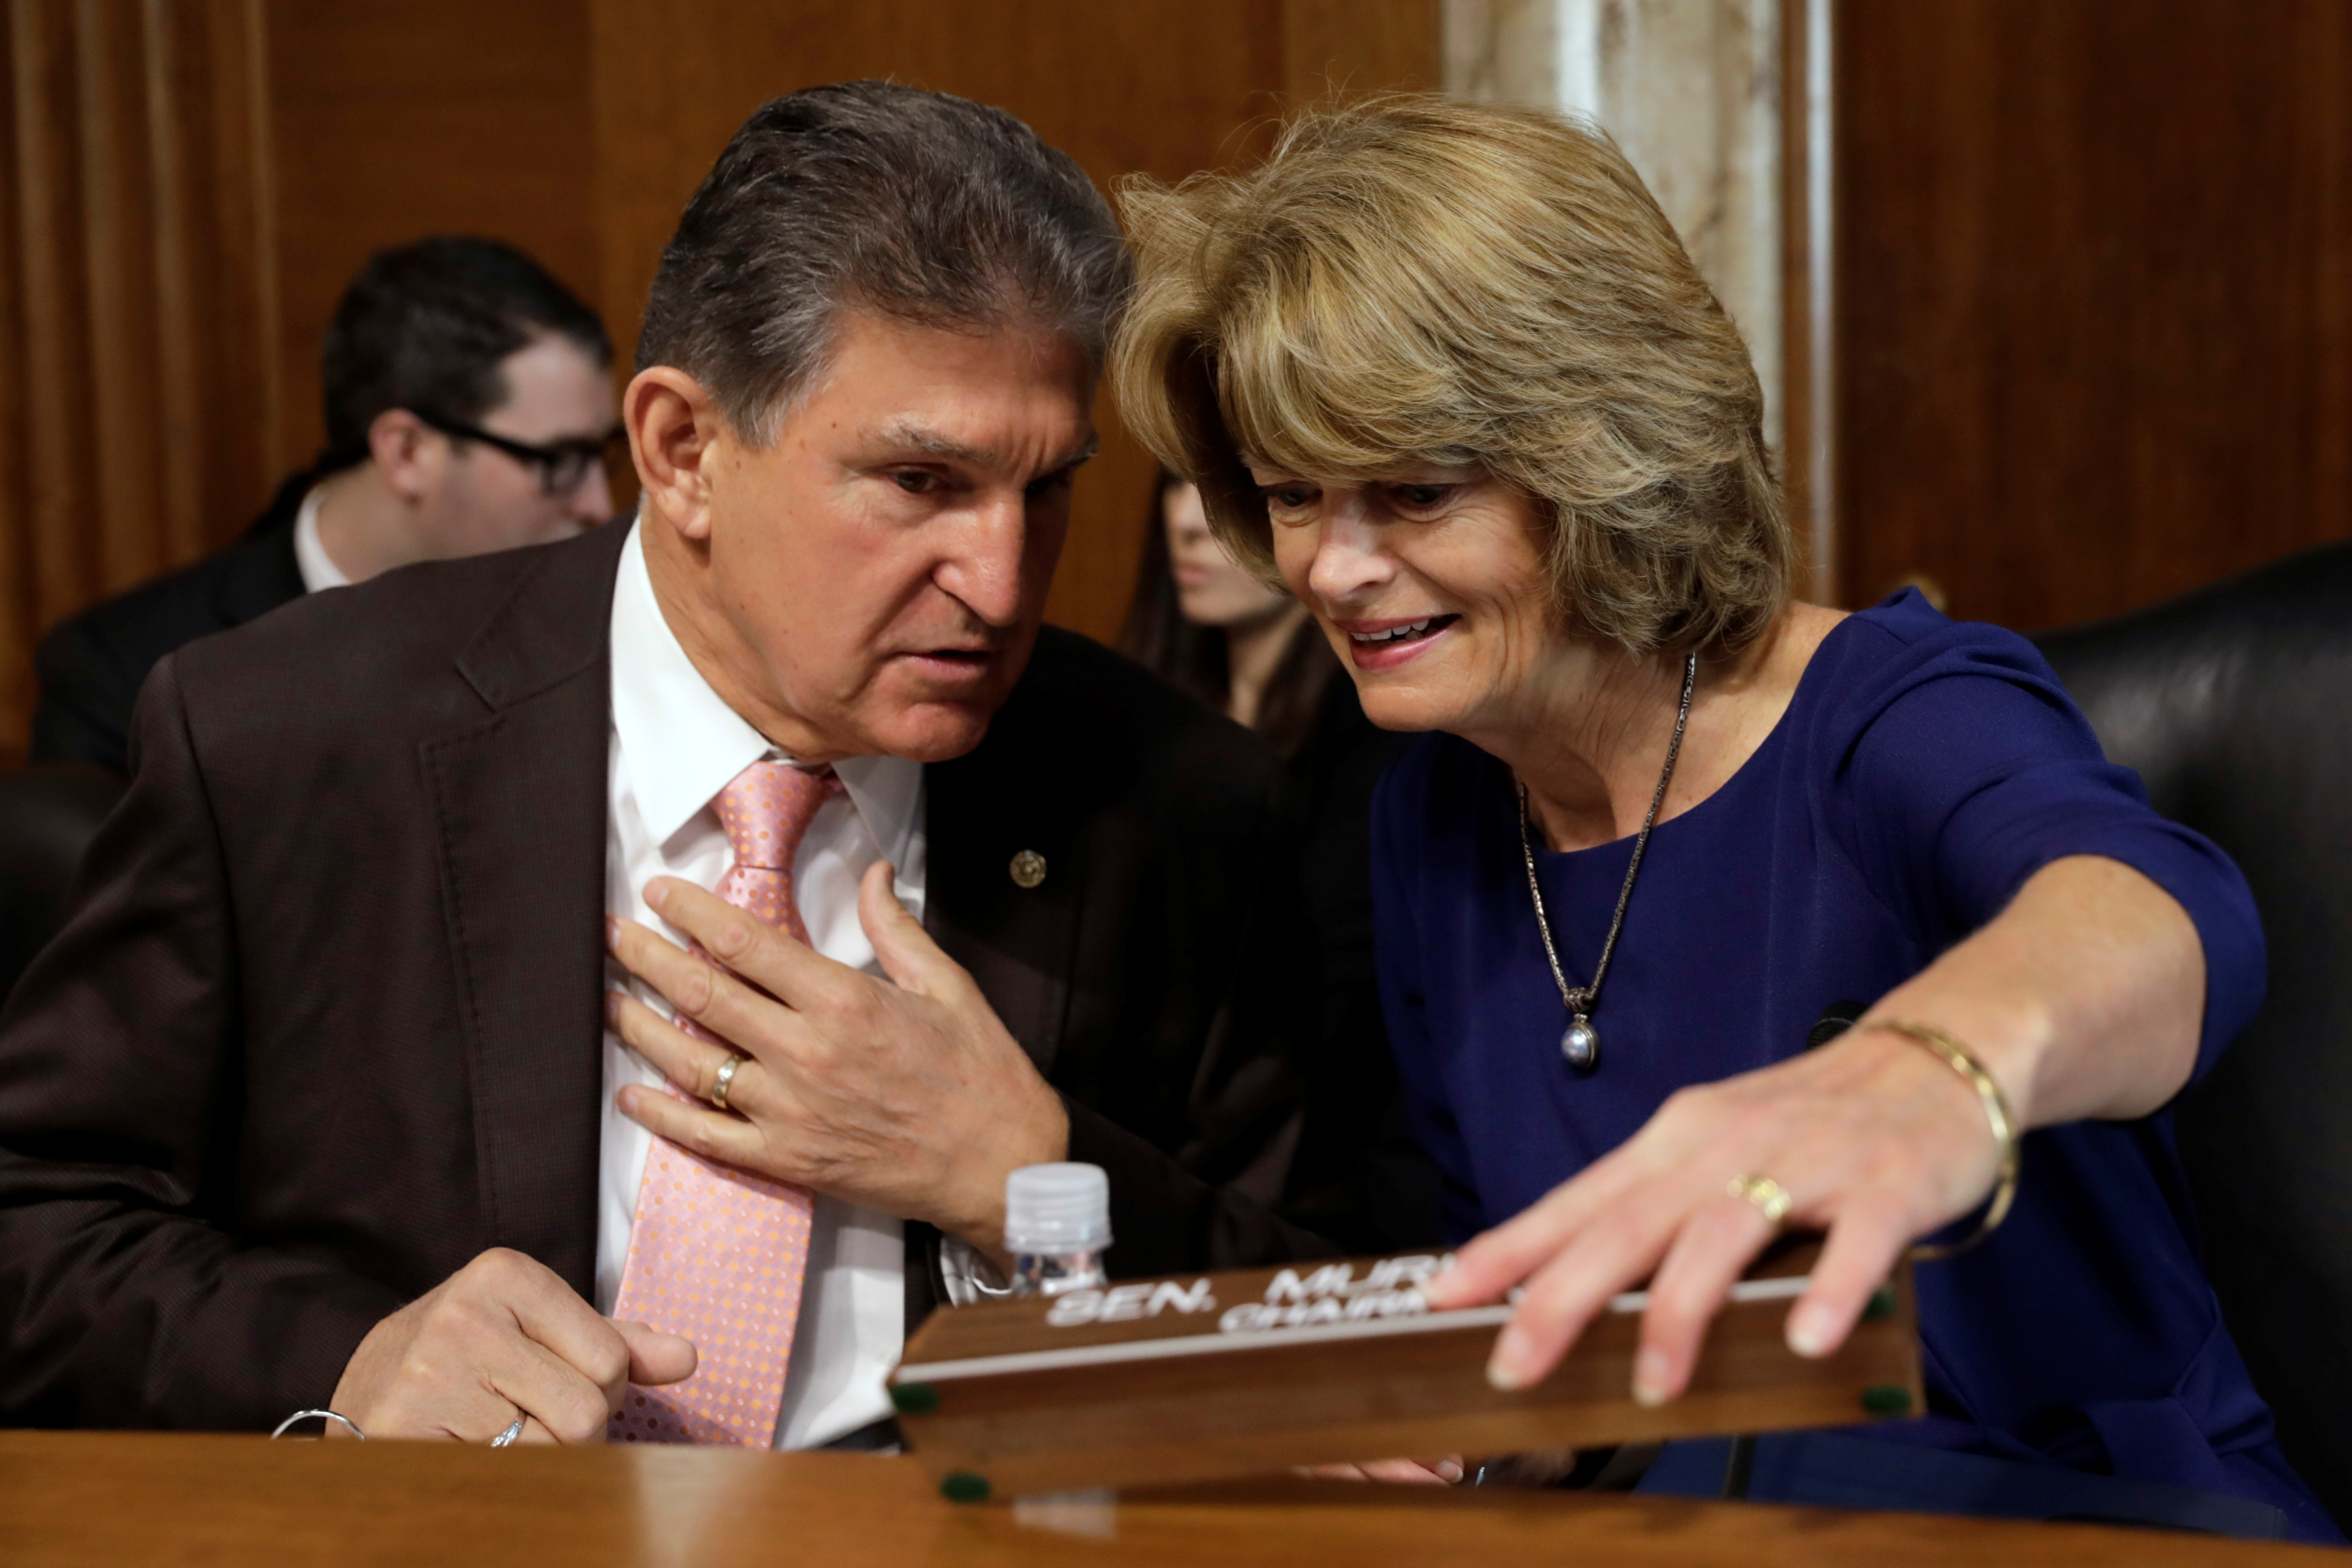 Senators Joe Manchin (D-WV) and Lisa Murkowski (R-AK) chat before a Senate Energy and Natural Resources Committee nomination hearing for former energy lobbyist David Bernhardt to be Interior secretary on Capitol Hill in Washington, U.S., March 28, 2019. REUTERS/Yuri Gripas